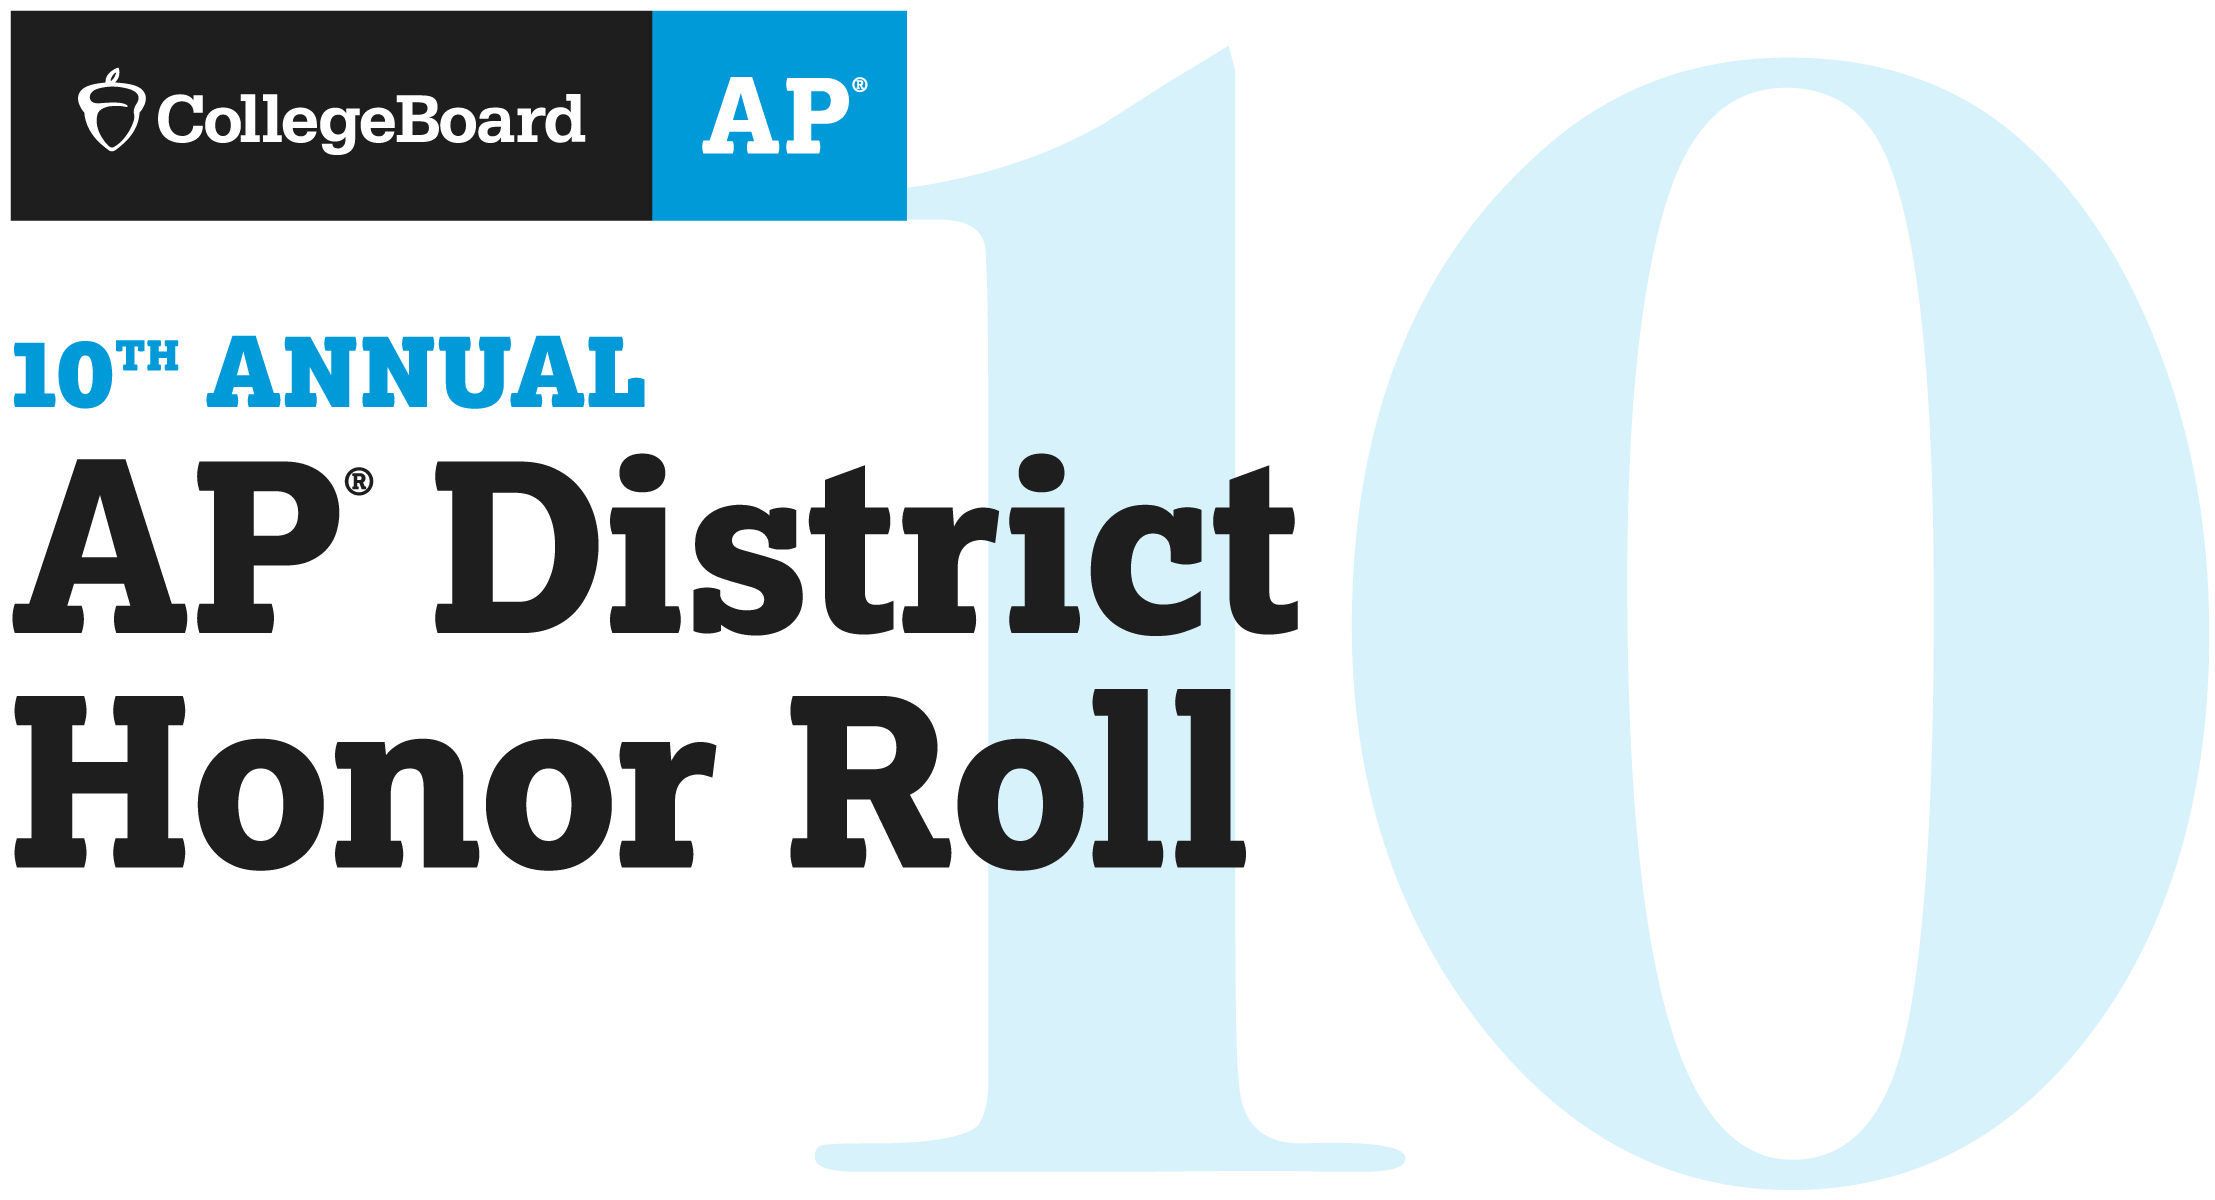 College Board AP Honor Roll 2